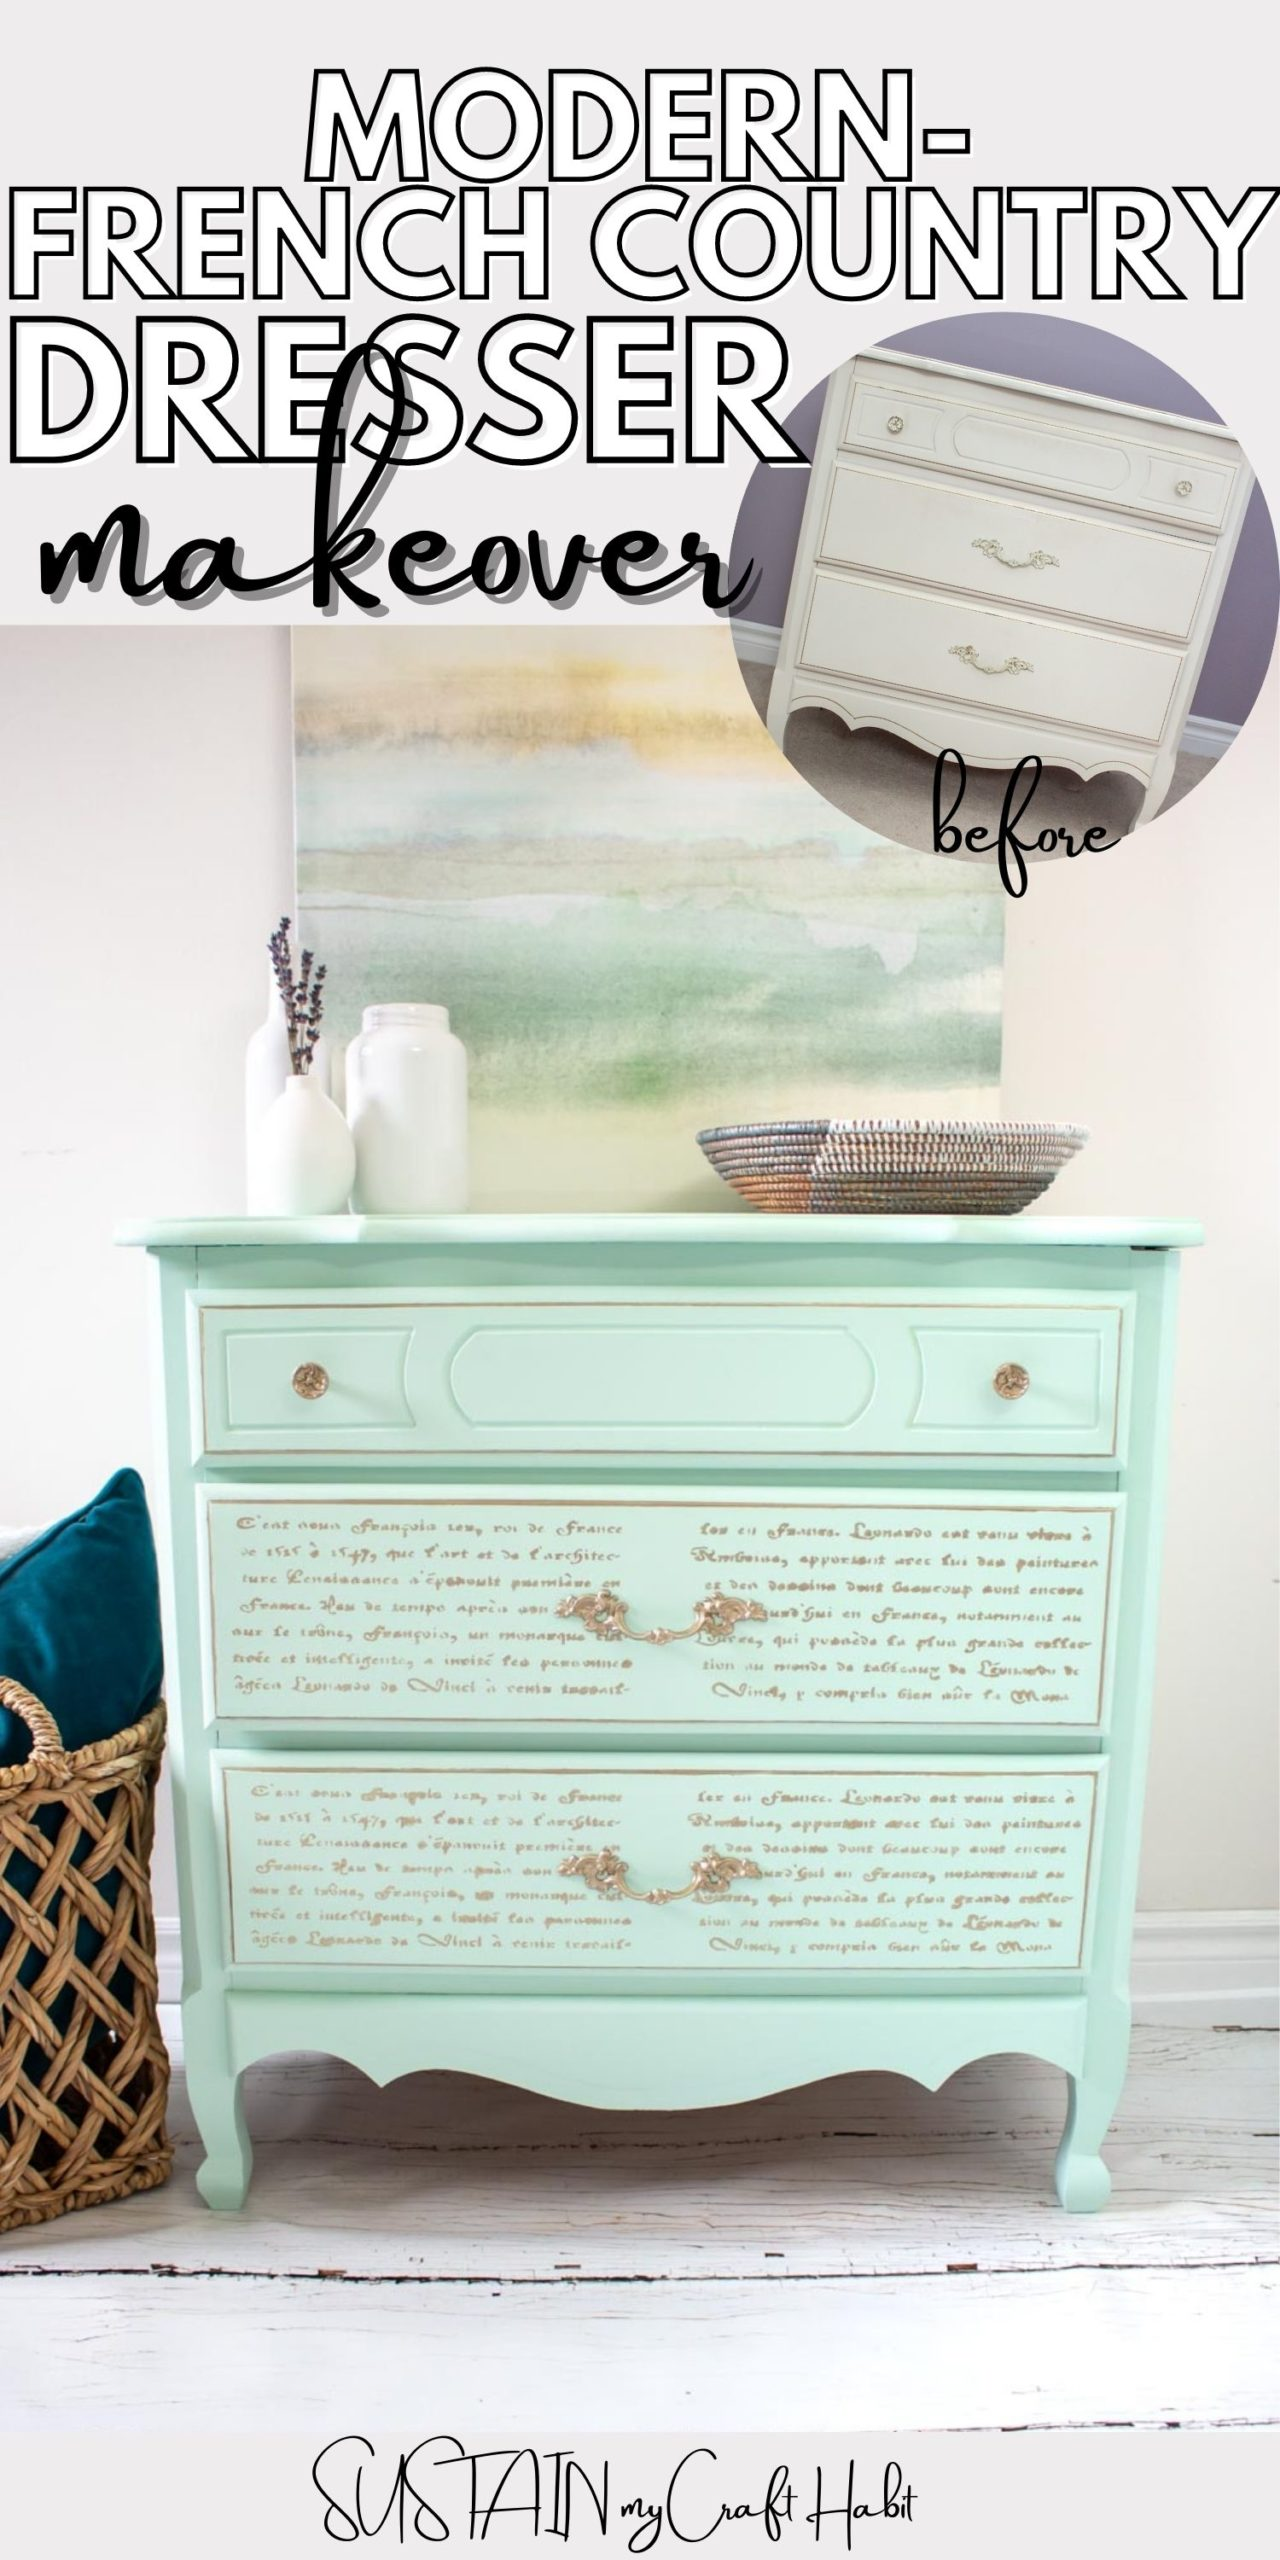 Finished modern french country furniture makeover with text overlay.